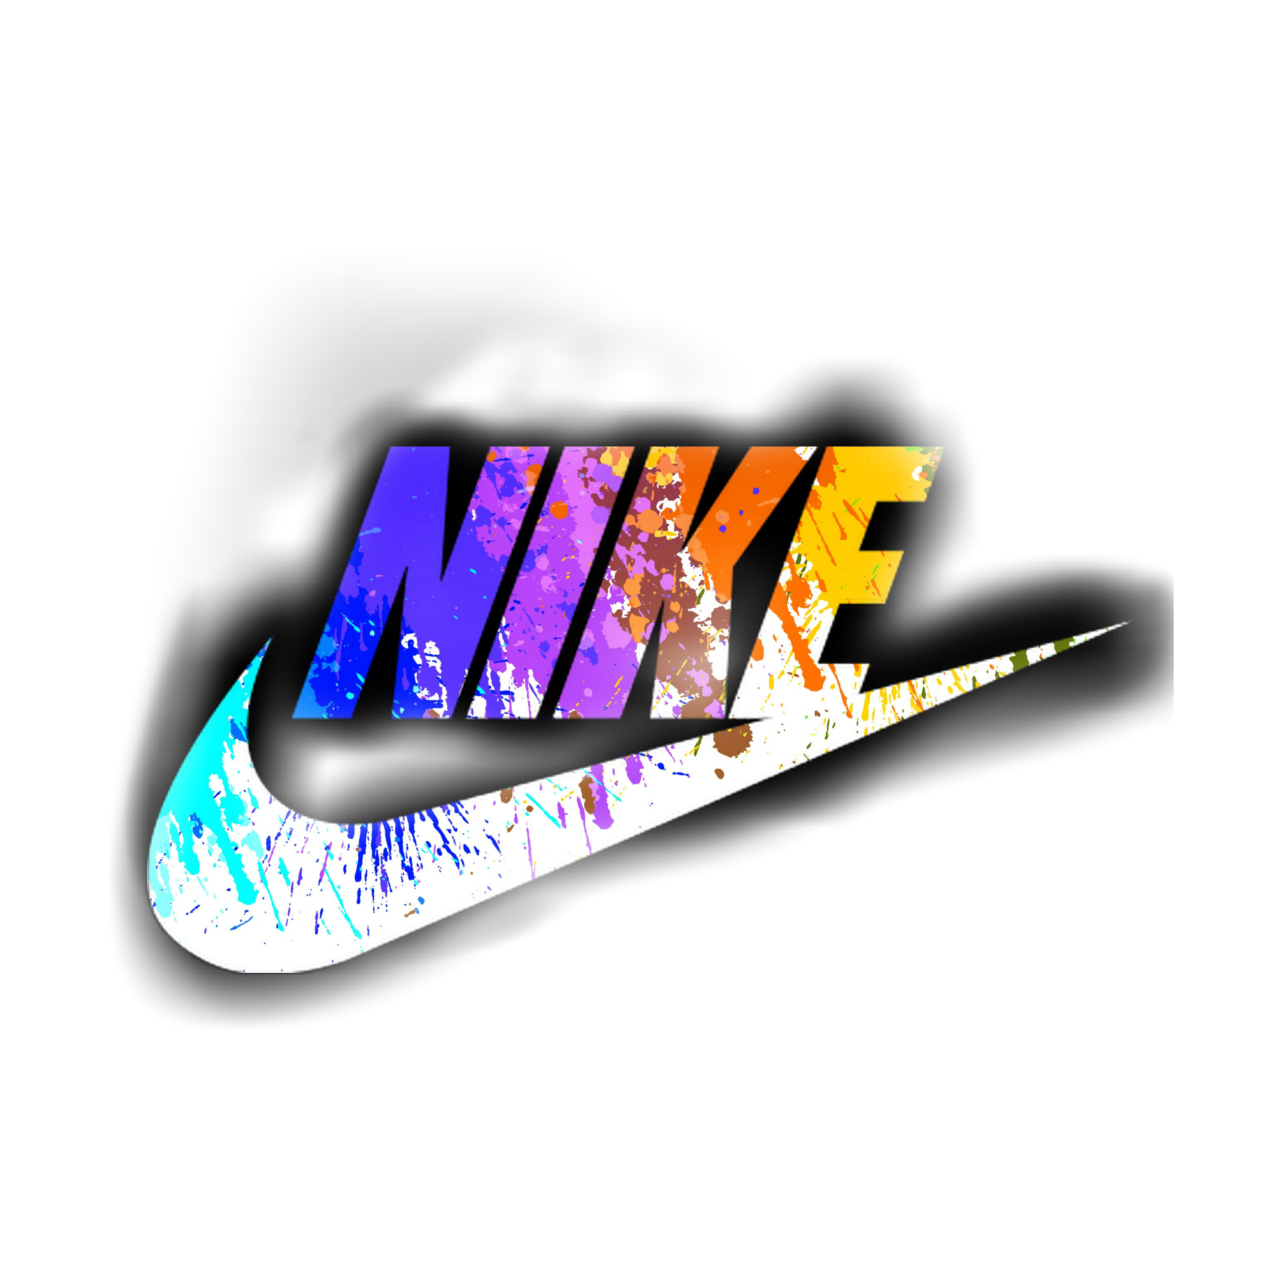 nike color like Sticker by diane smitch in 2020 Nike